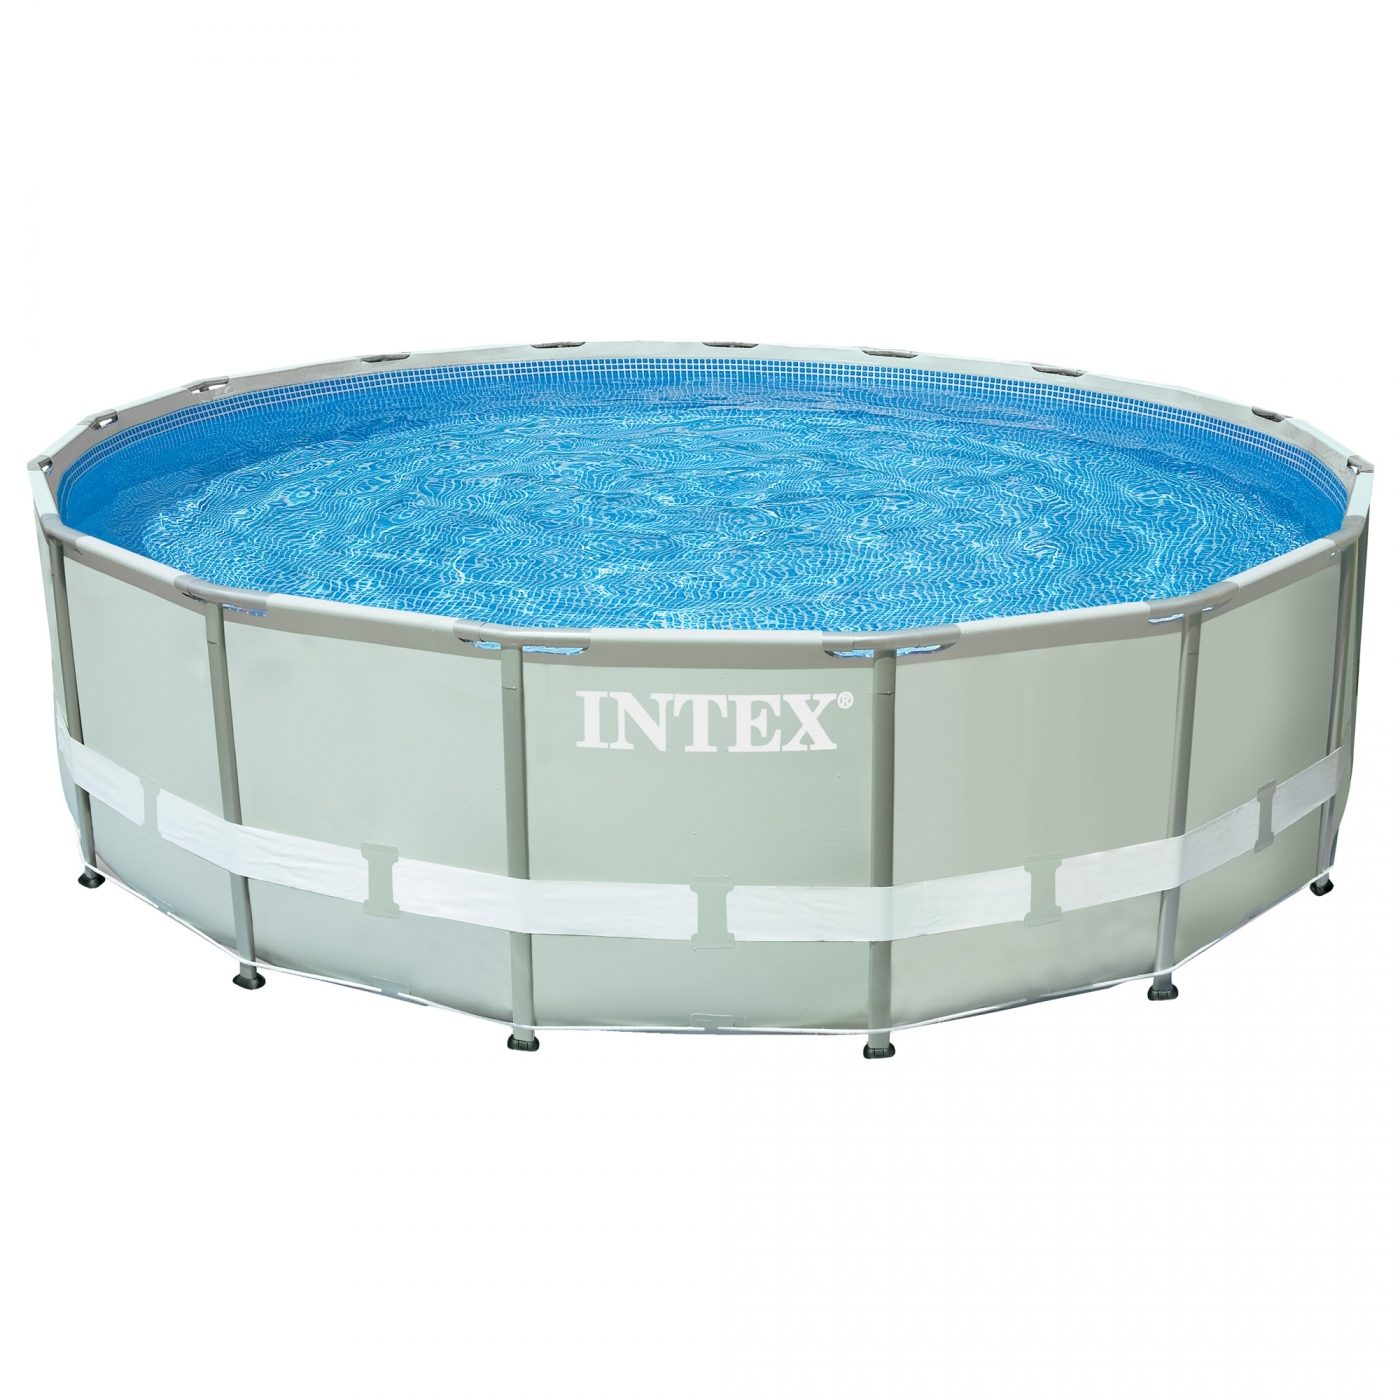 Intex Piscinas Acessorios Piscina Ultra 488 X 122 Cm Con Depuradora Intex Por 549 95